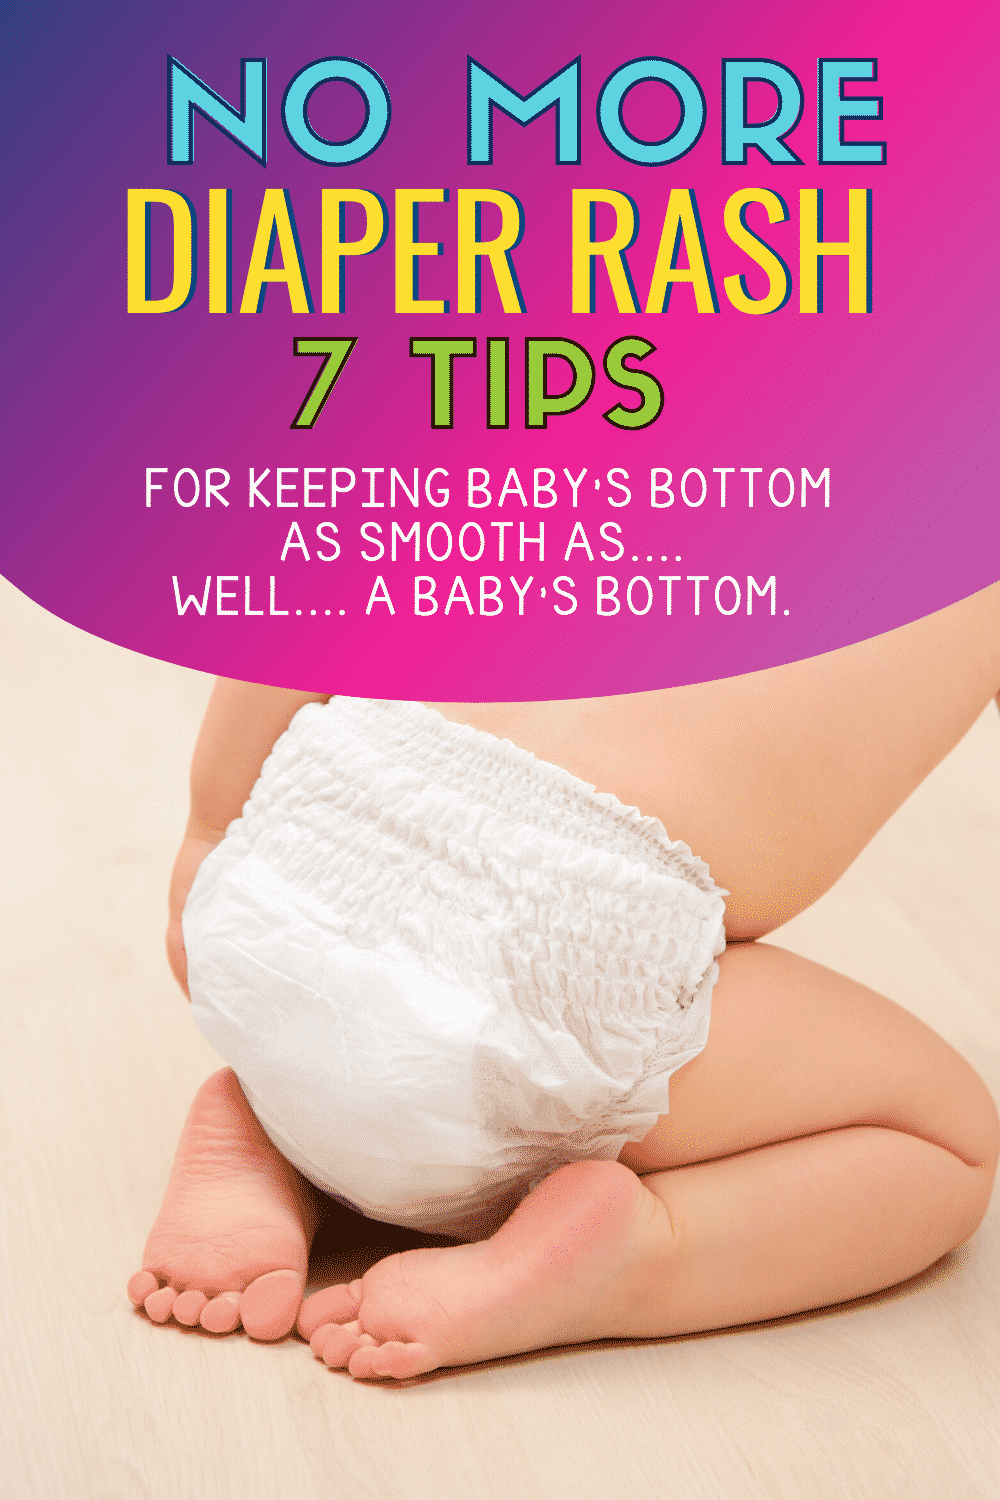 How to Treat and Prevent Diaper Rash